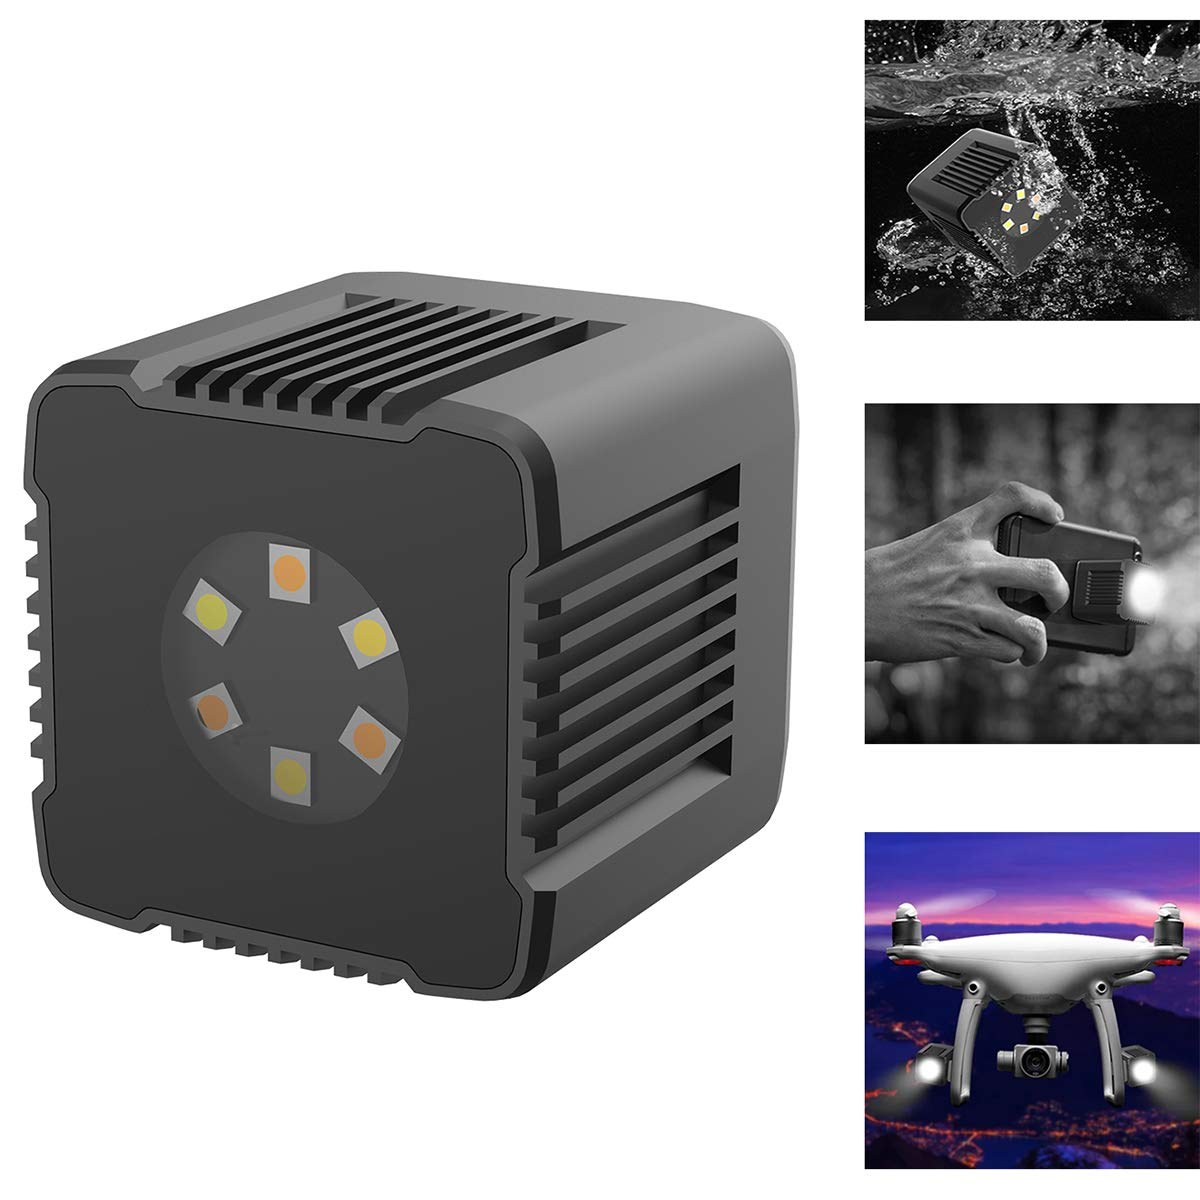 Dazzne Moin L1 Lume Cube LED Light, 3200K-5600K, 0-1000lux (0.5m) Waterproof 35 ft Underwater Photography Light with Magnetic Charging Cable APP Control for DSLR, Drones, Action Camera, Smartphone by Dazzne